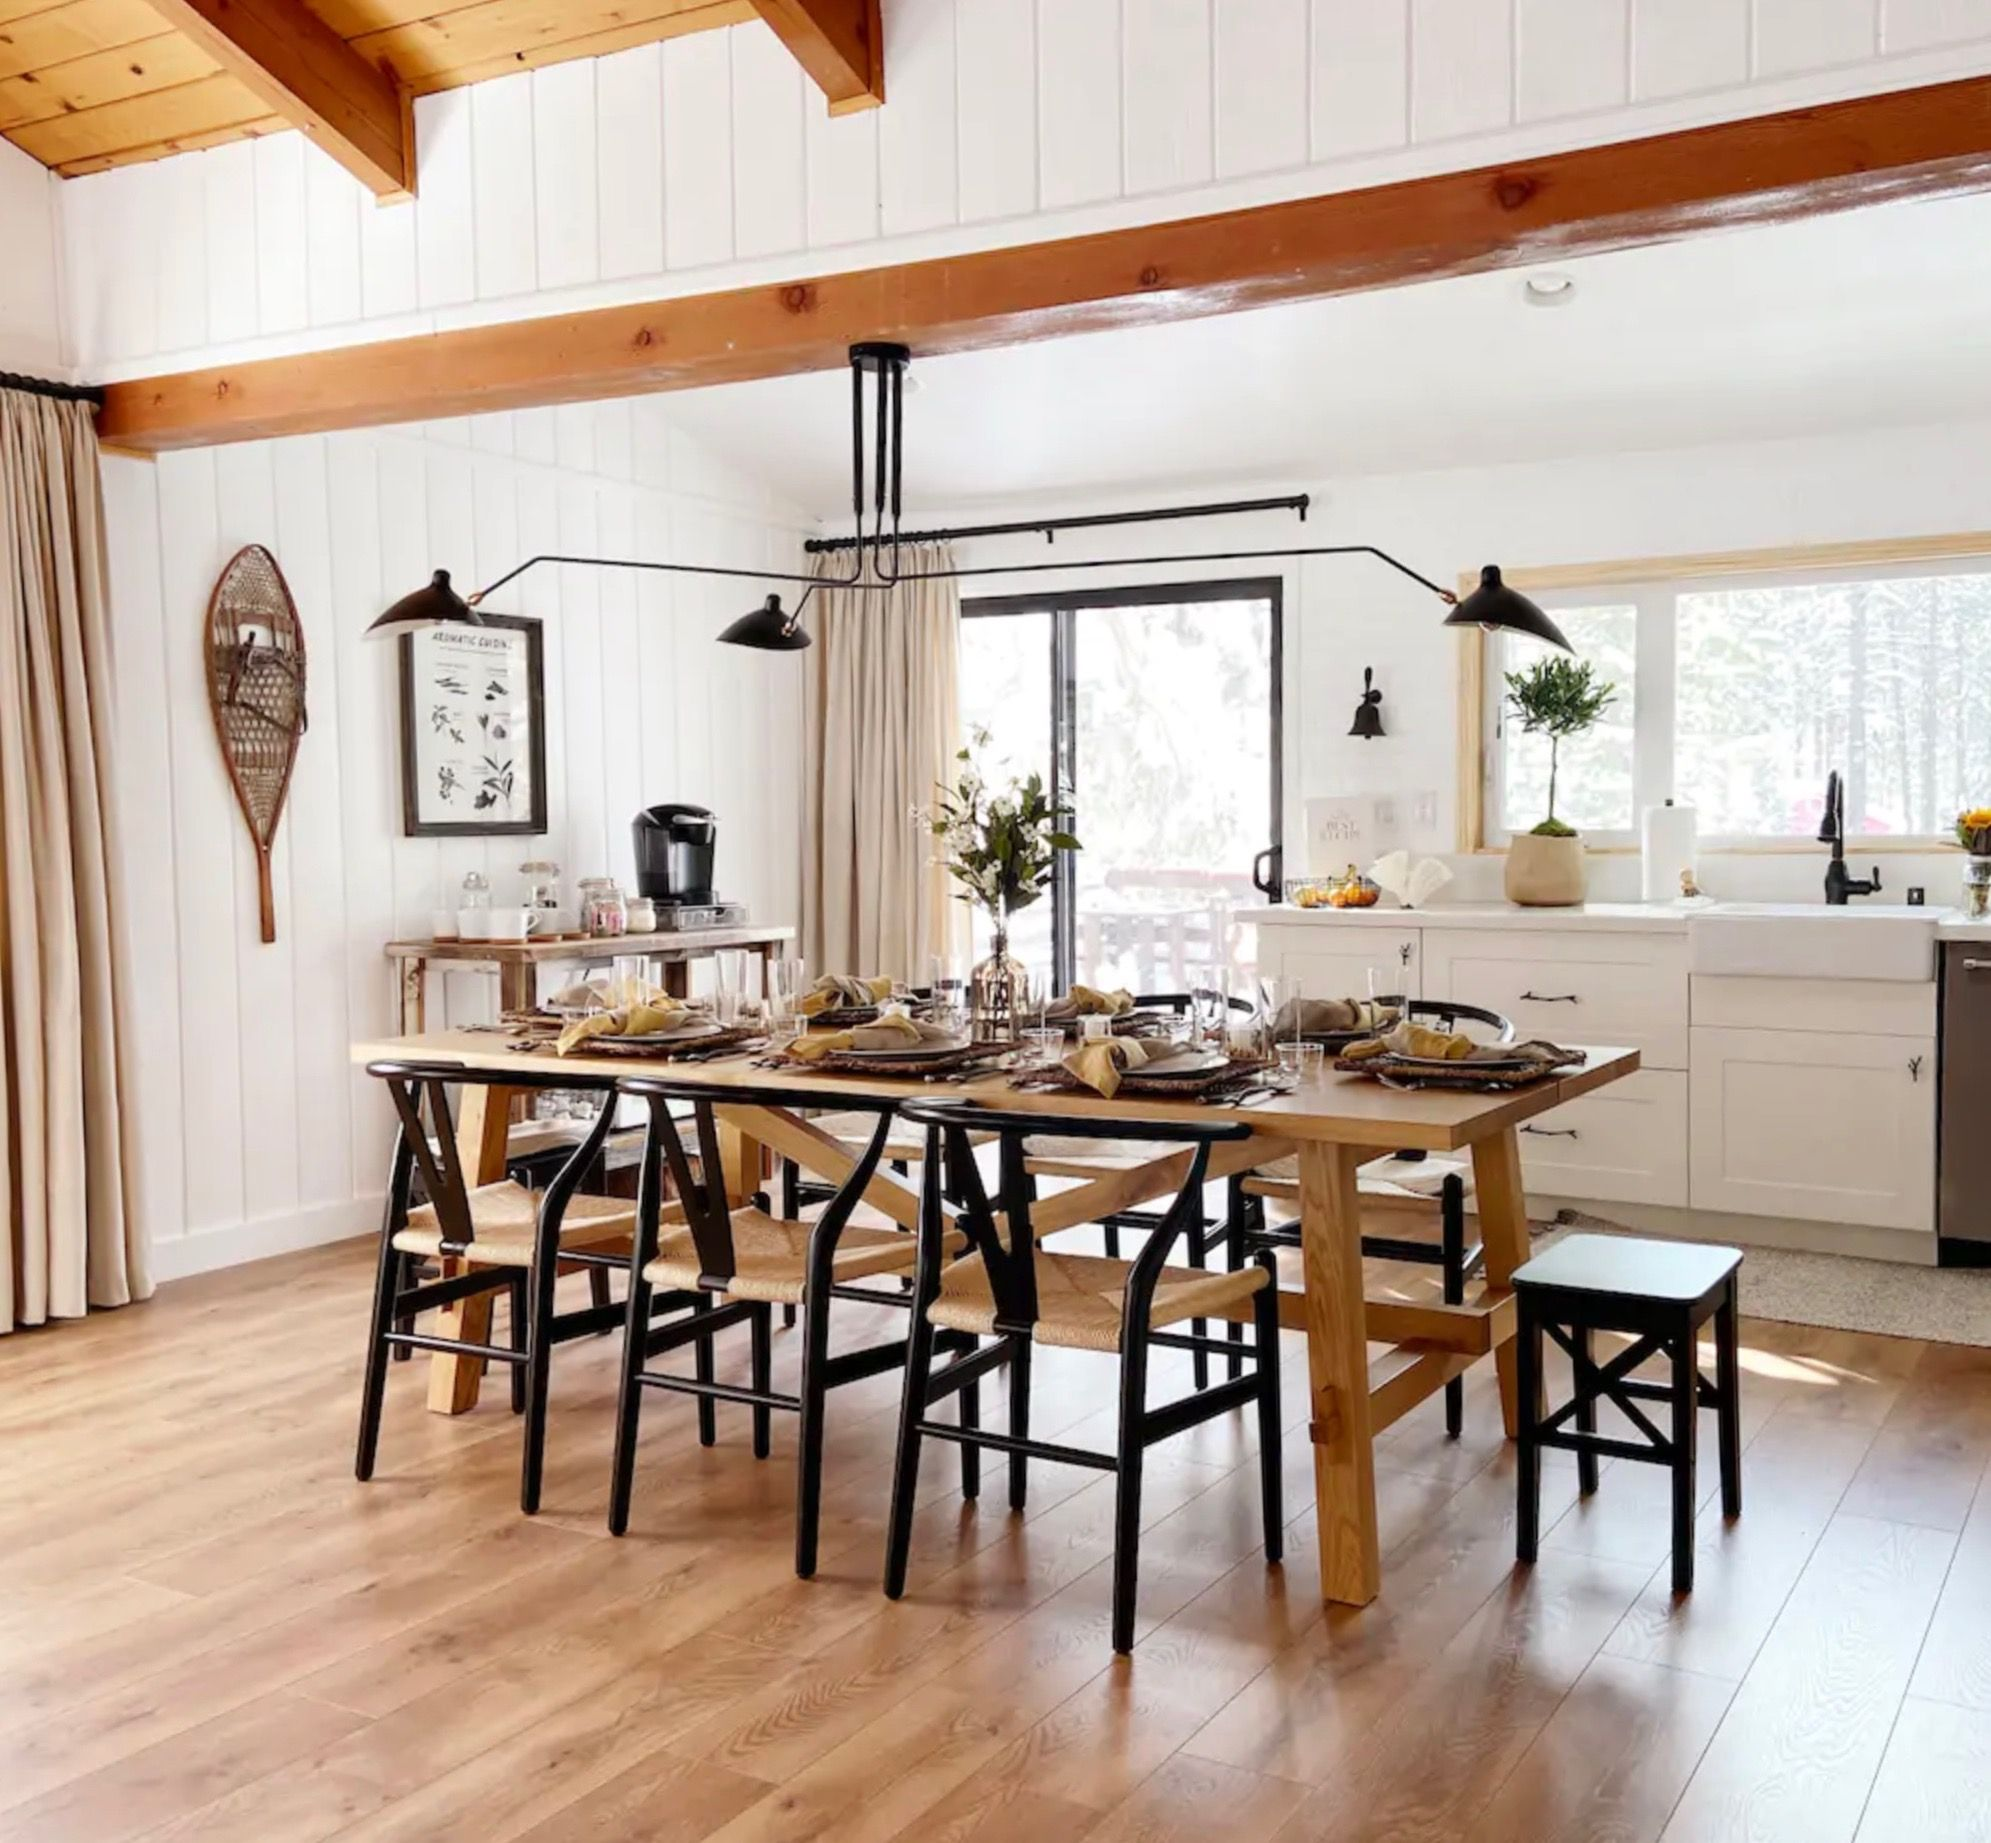 The Cottage On Catalina Kitchen Reveal Part 2 In 2020 Cottage Kitchen Cabinets Kitchen Design Small Country Kitchen Cabinets